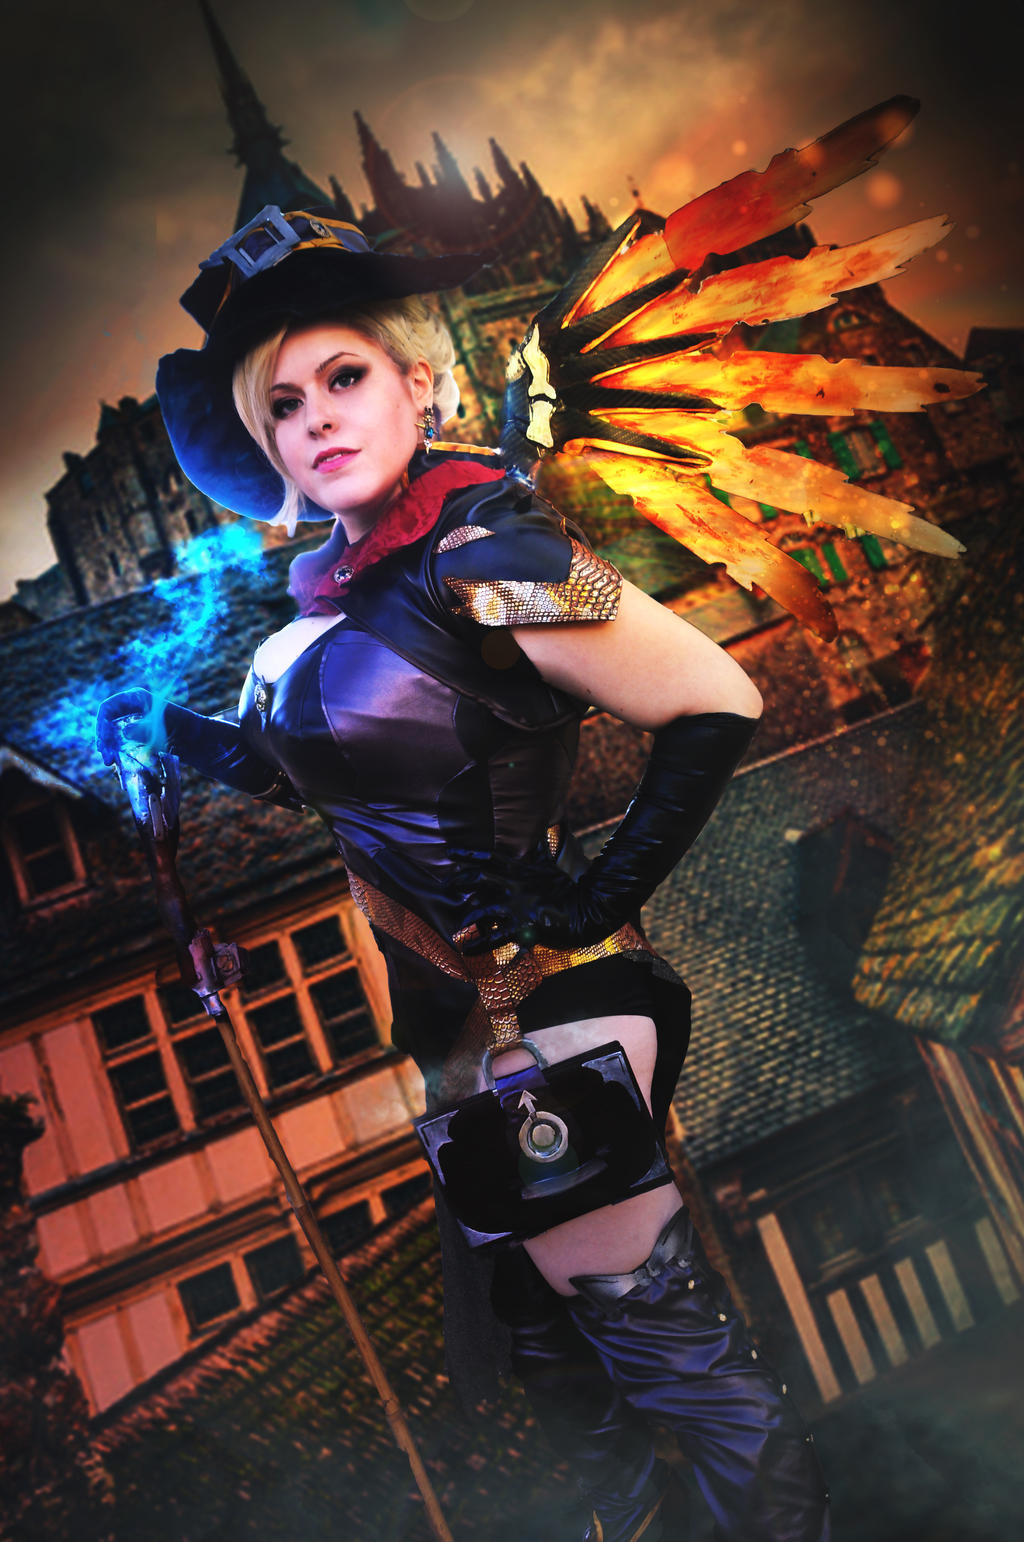 Mercy Halloween Skin - Overwatch by Kibamarta on DeviantArt